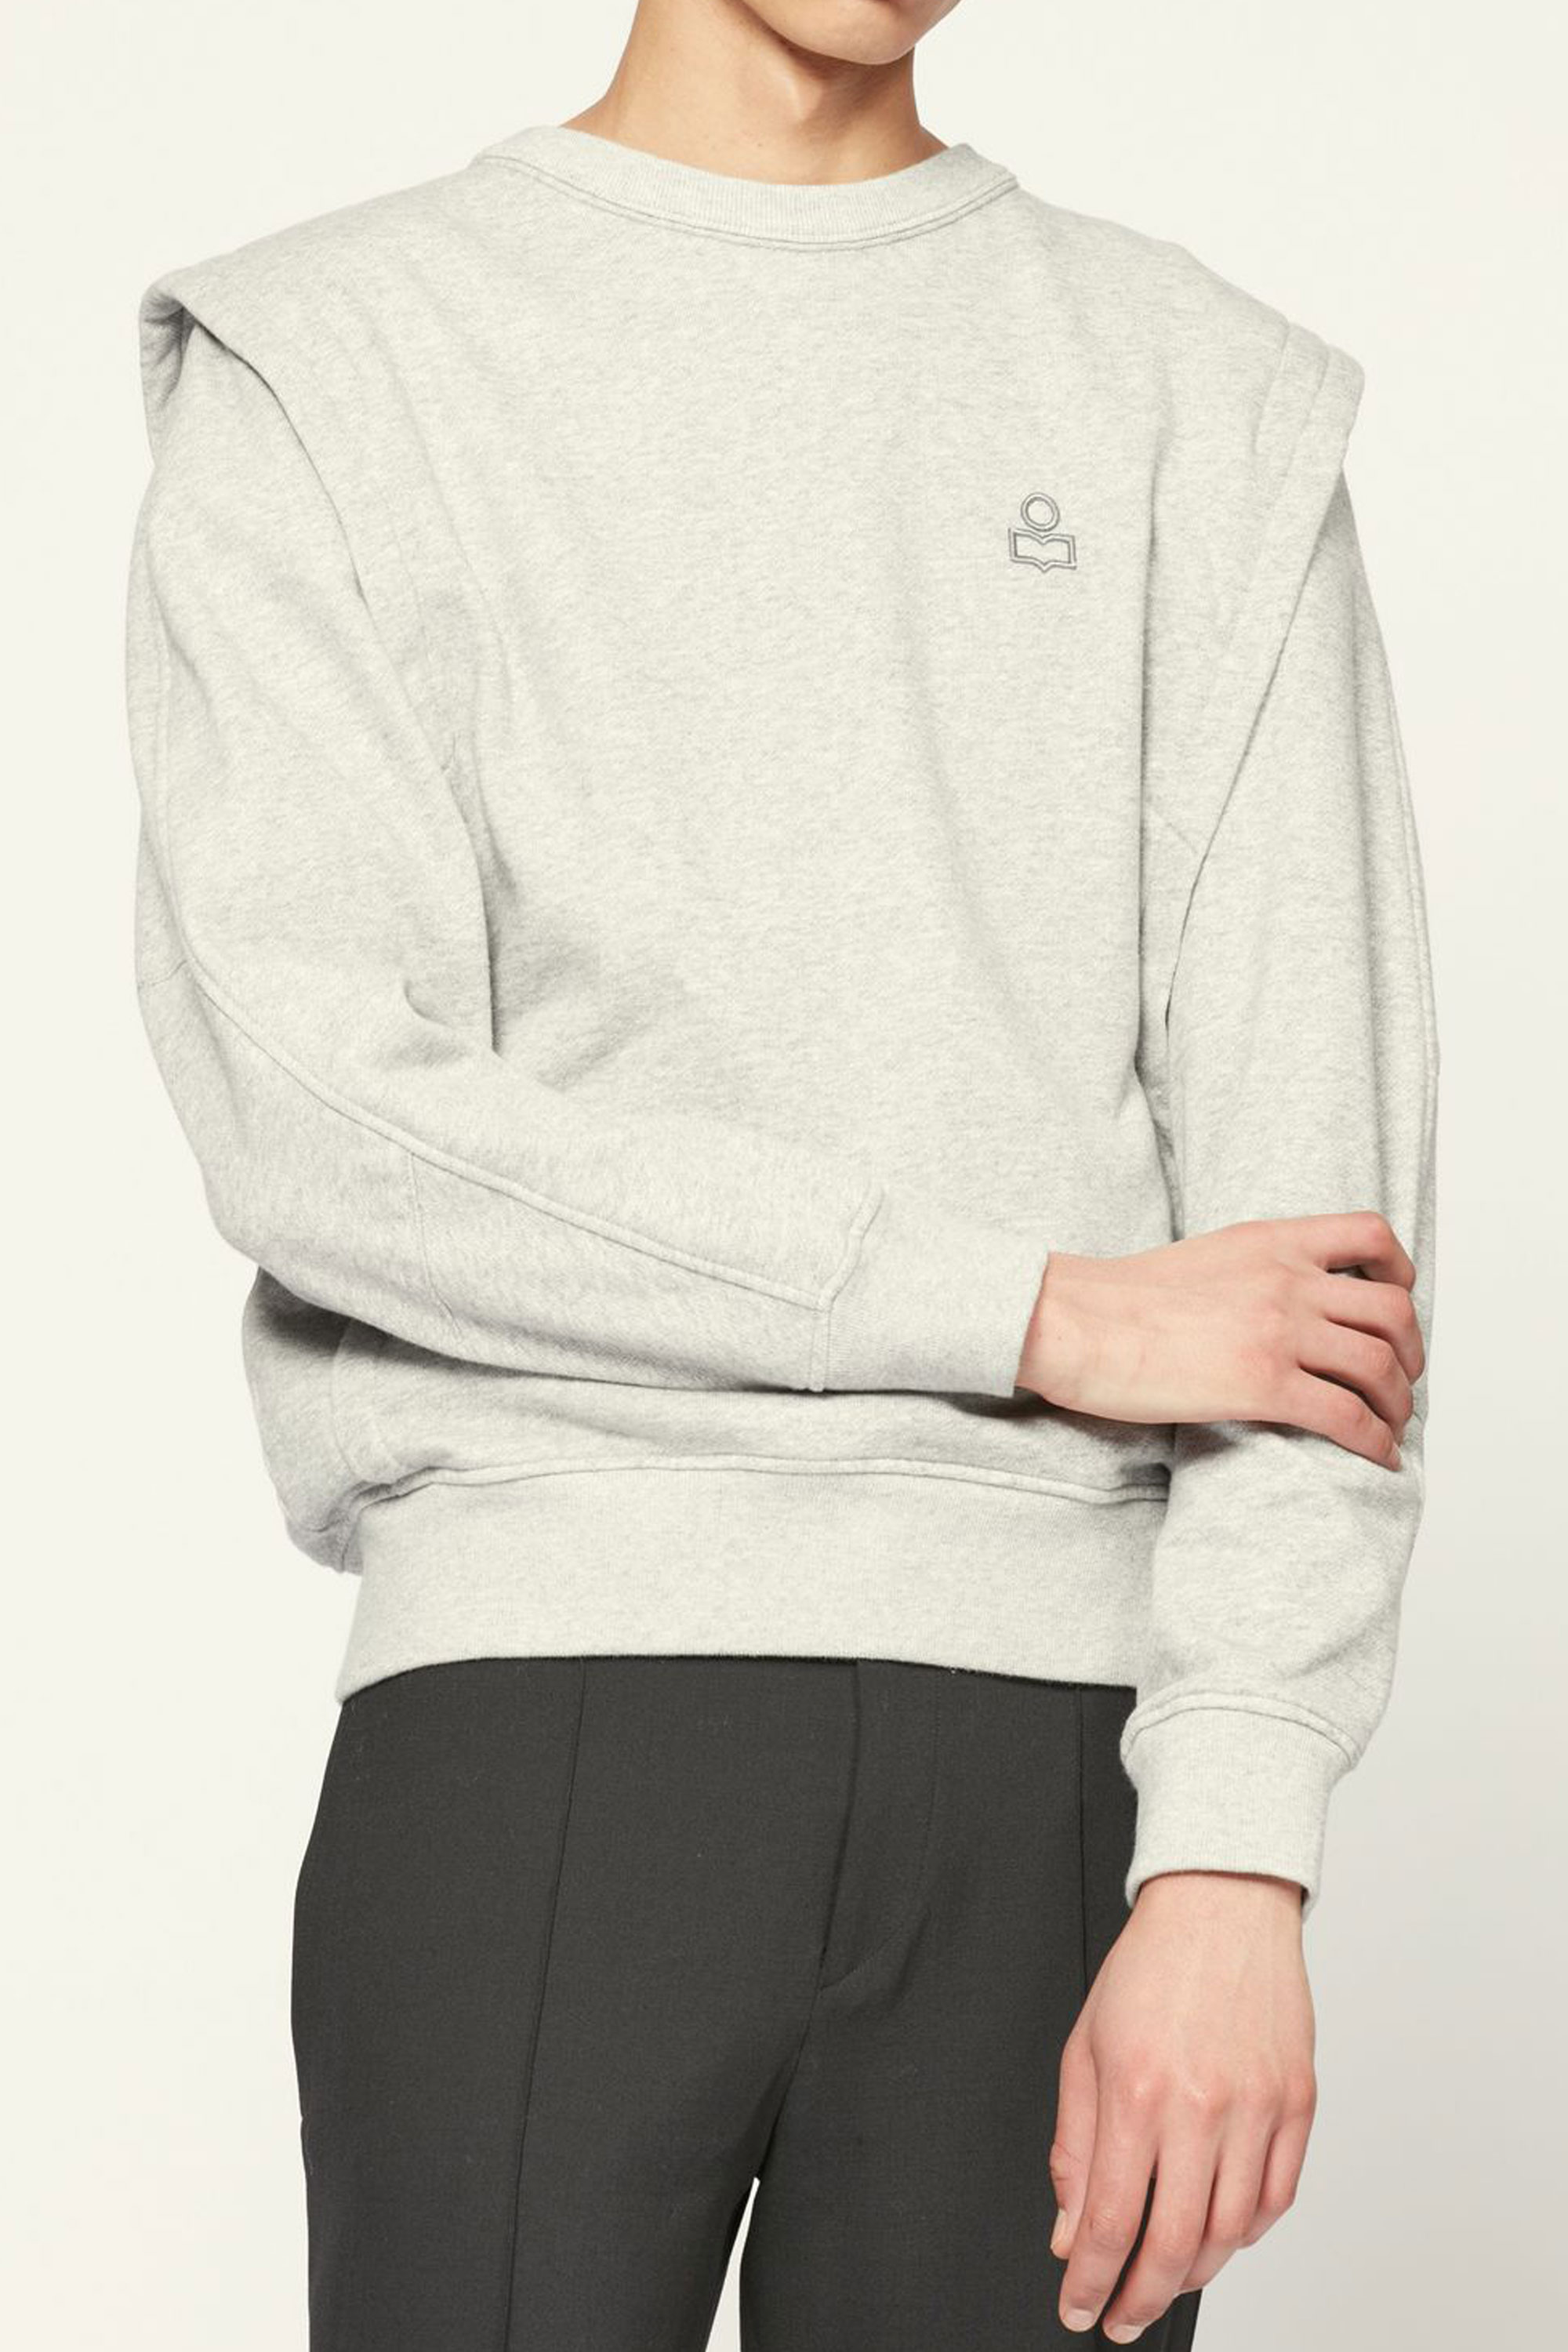 I.Marant MIBBER Sweat shirts  2 corlor (Grey & Faded Black)  발매전 게시글 예약시 5%할인쿠폰 증정